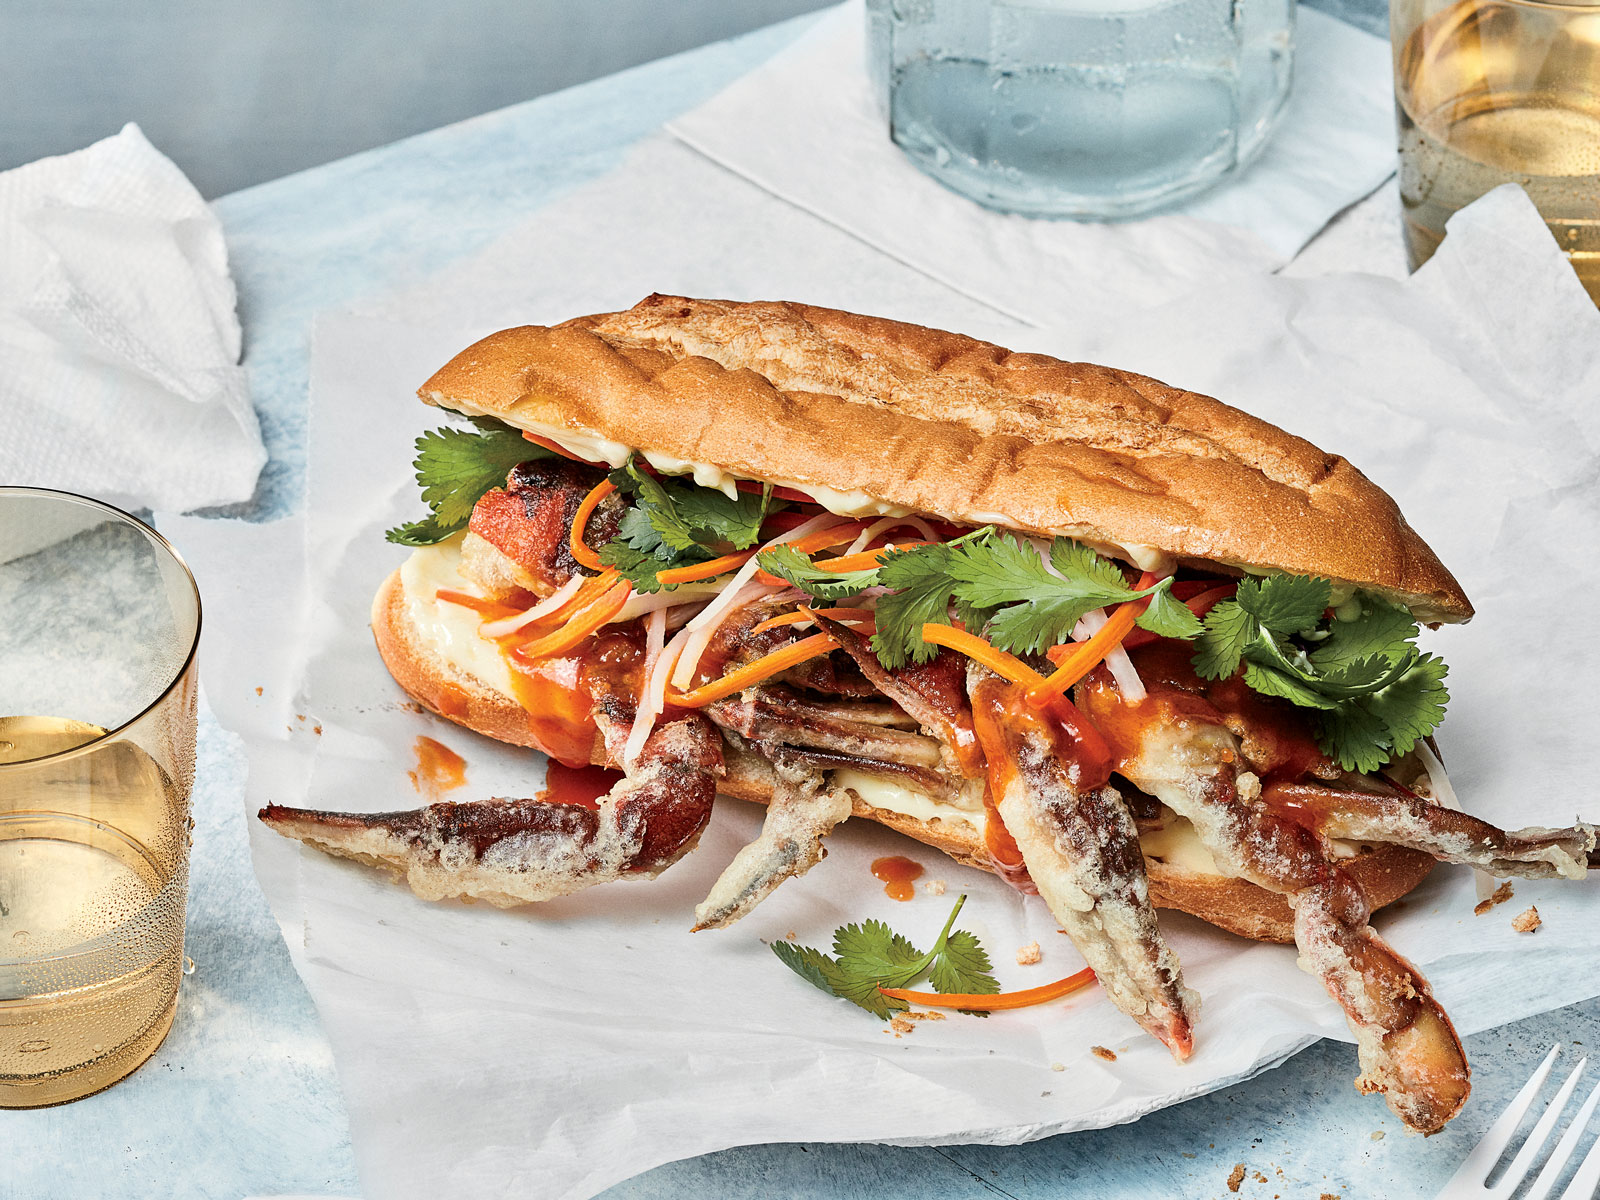 Crispy Soft Shell Crab Banh Mi with Tamarind Sauce